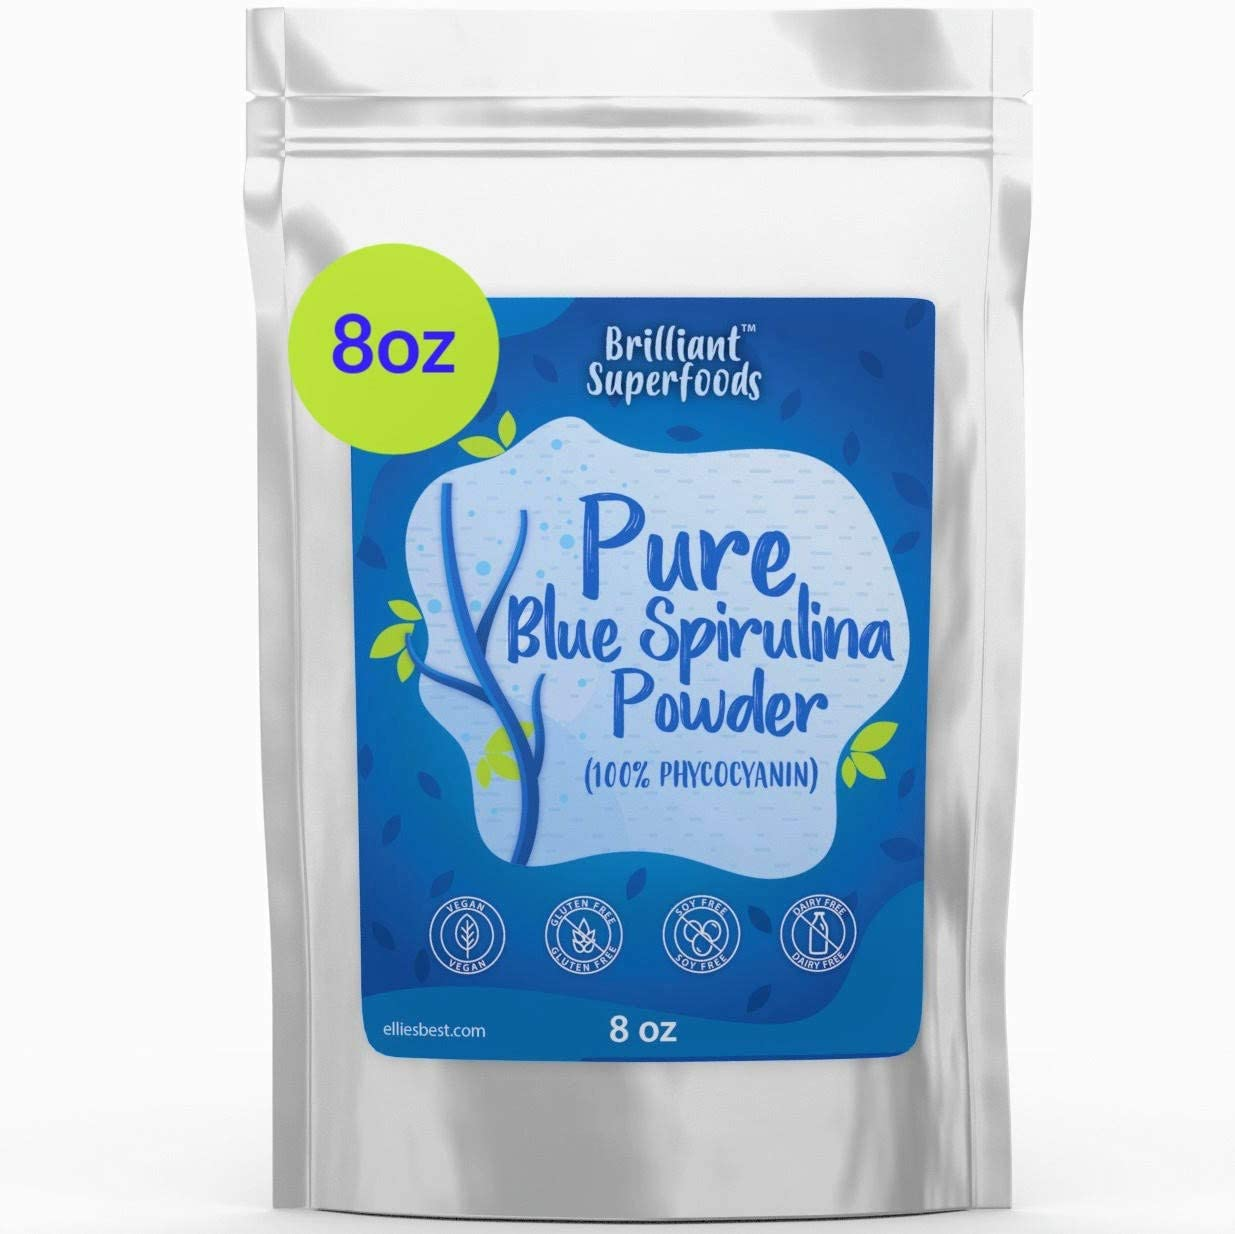 Blue Spirulina Powder - 100% Pure Superfood Supplement - Brilliant Blue Natural Food Coloring - Pure Water Extracted - Ellies Best (8 oz)